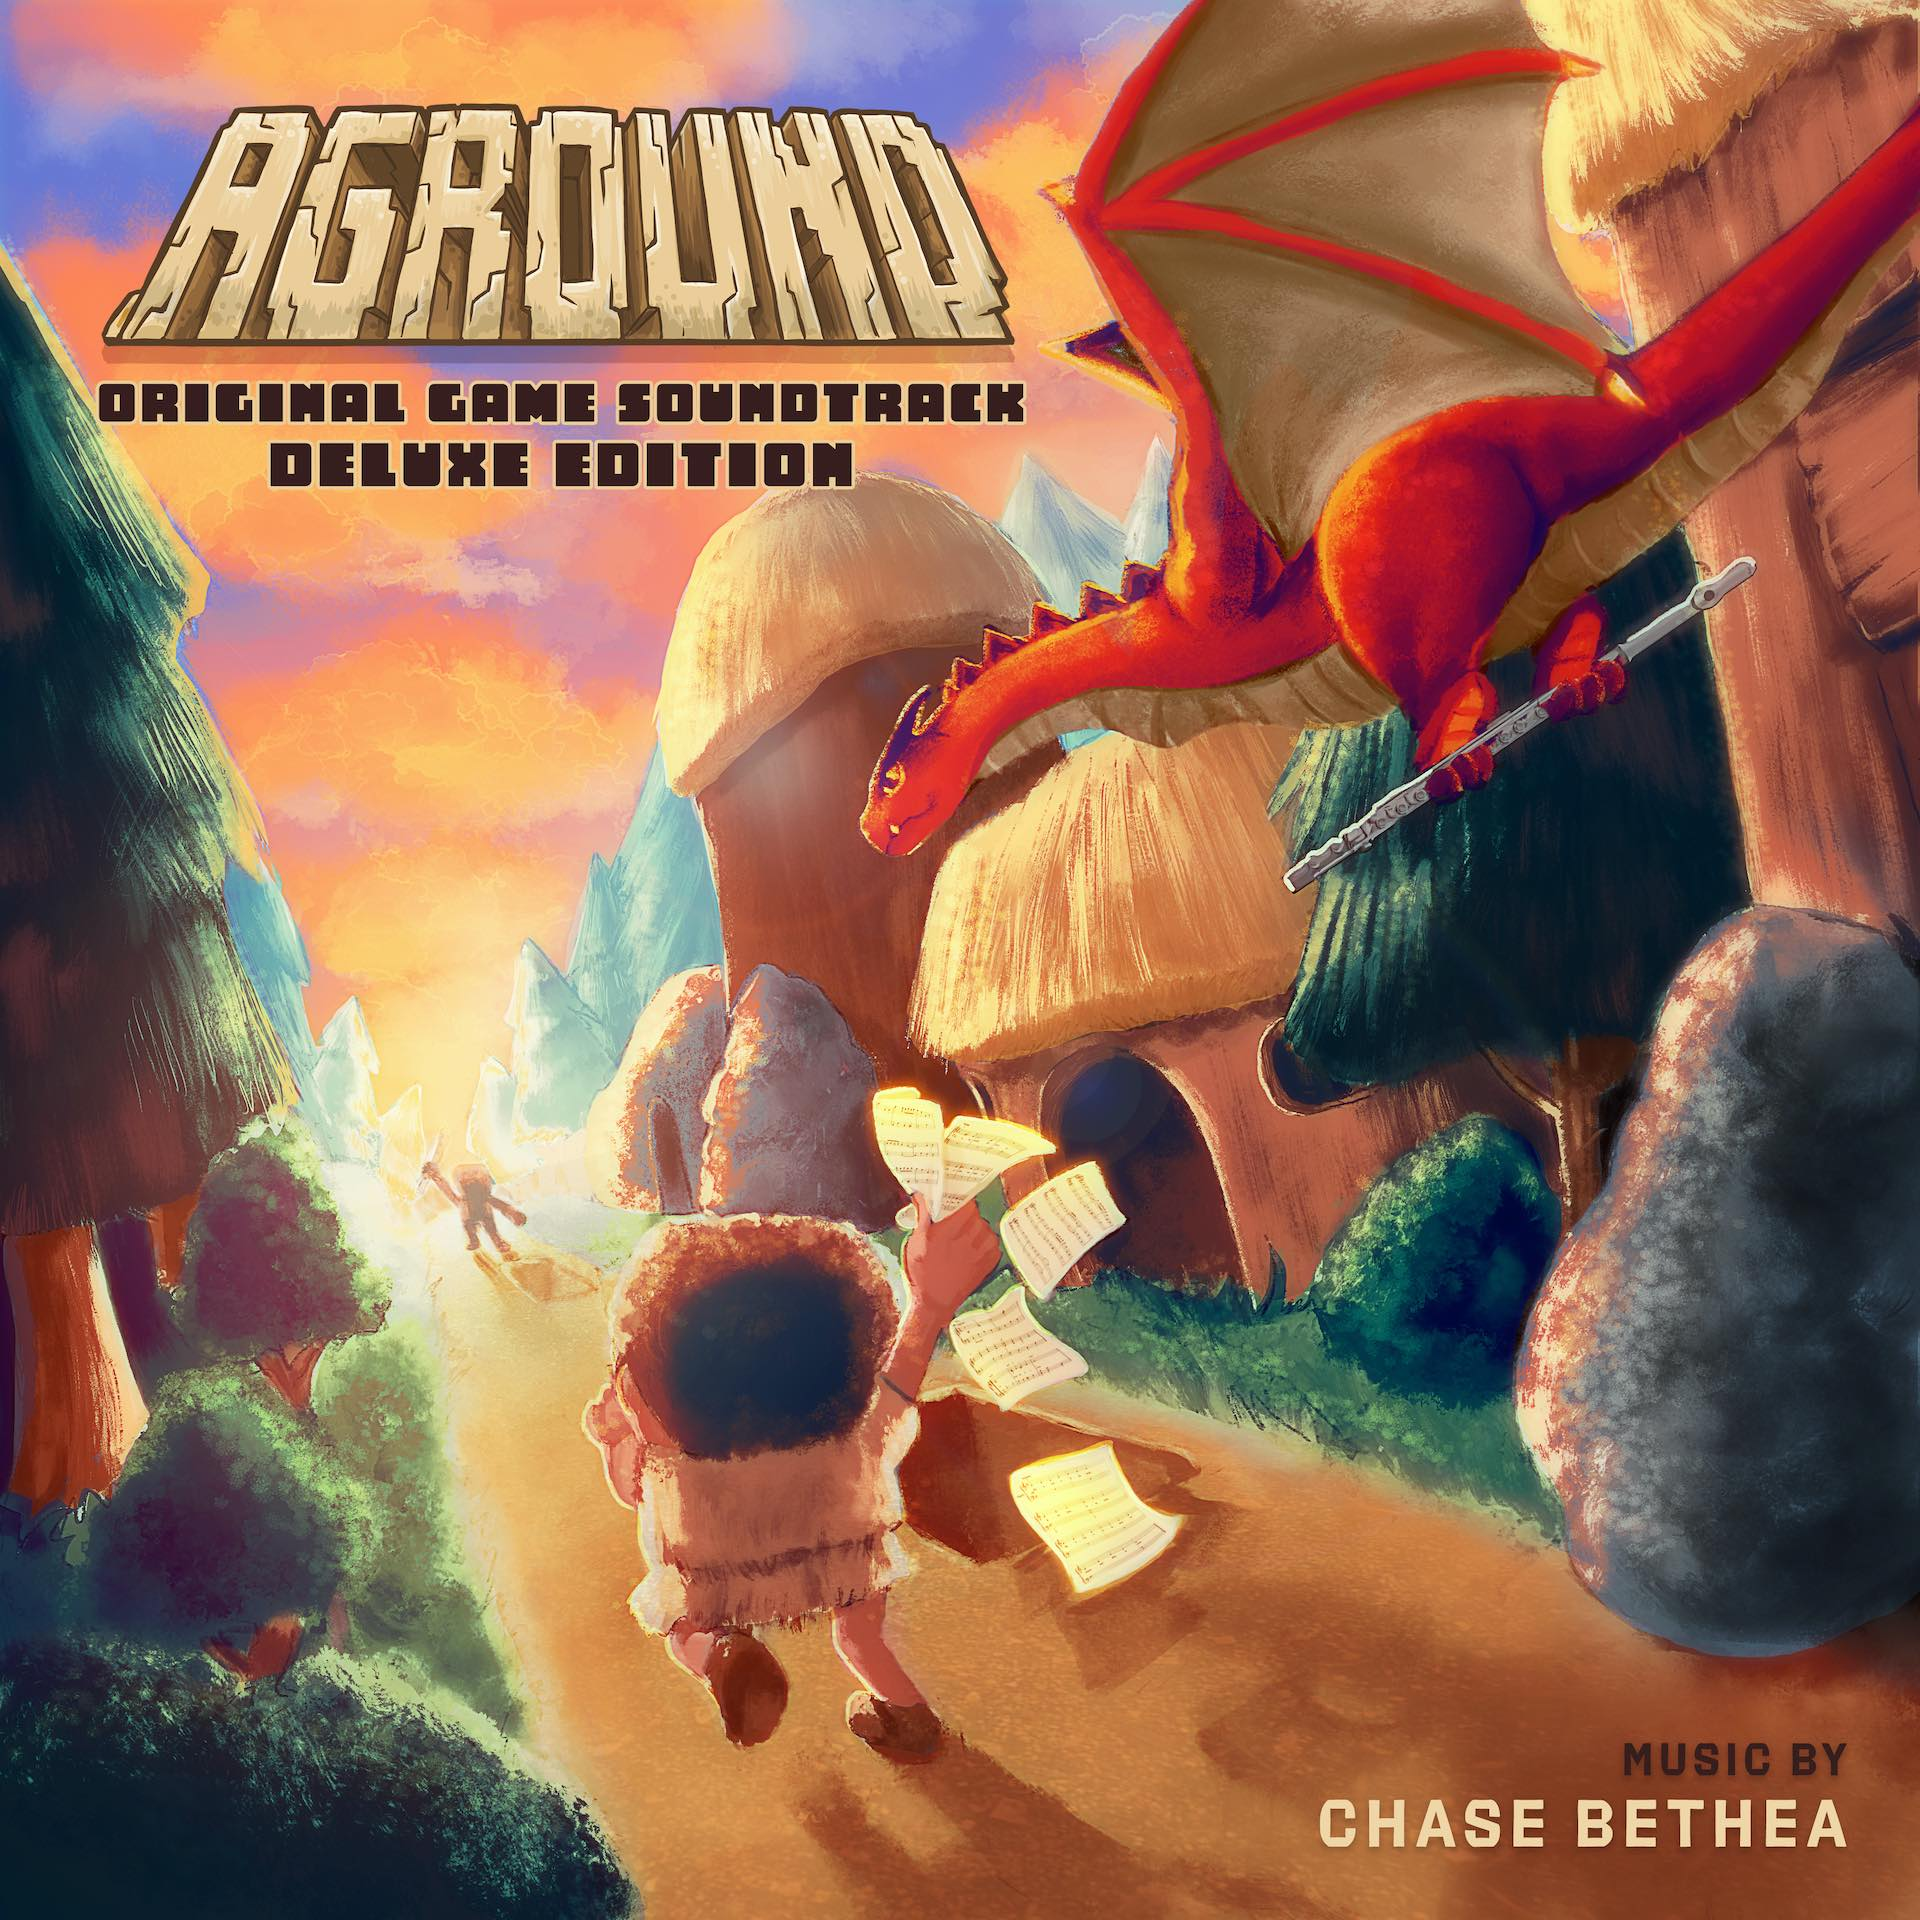 Aground Original Game Soundtrack Deluxe Edition Soundtrack | NYX Game Awards